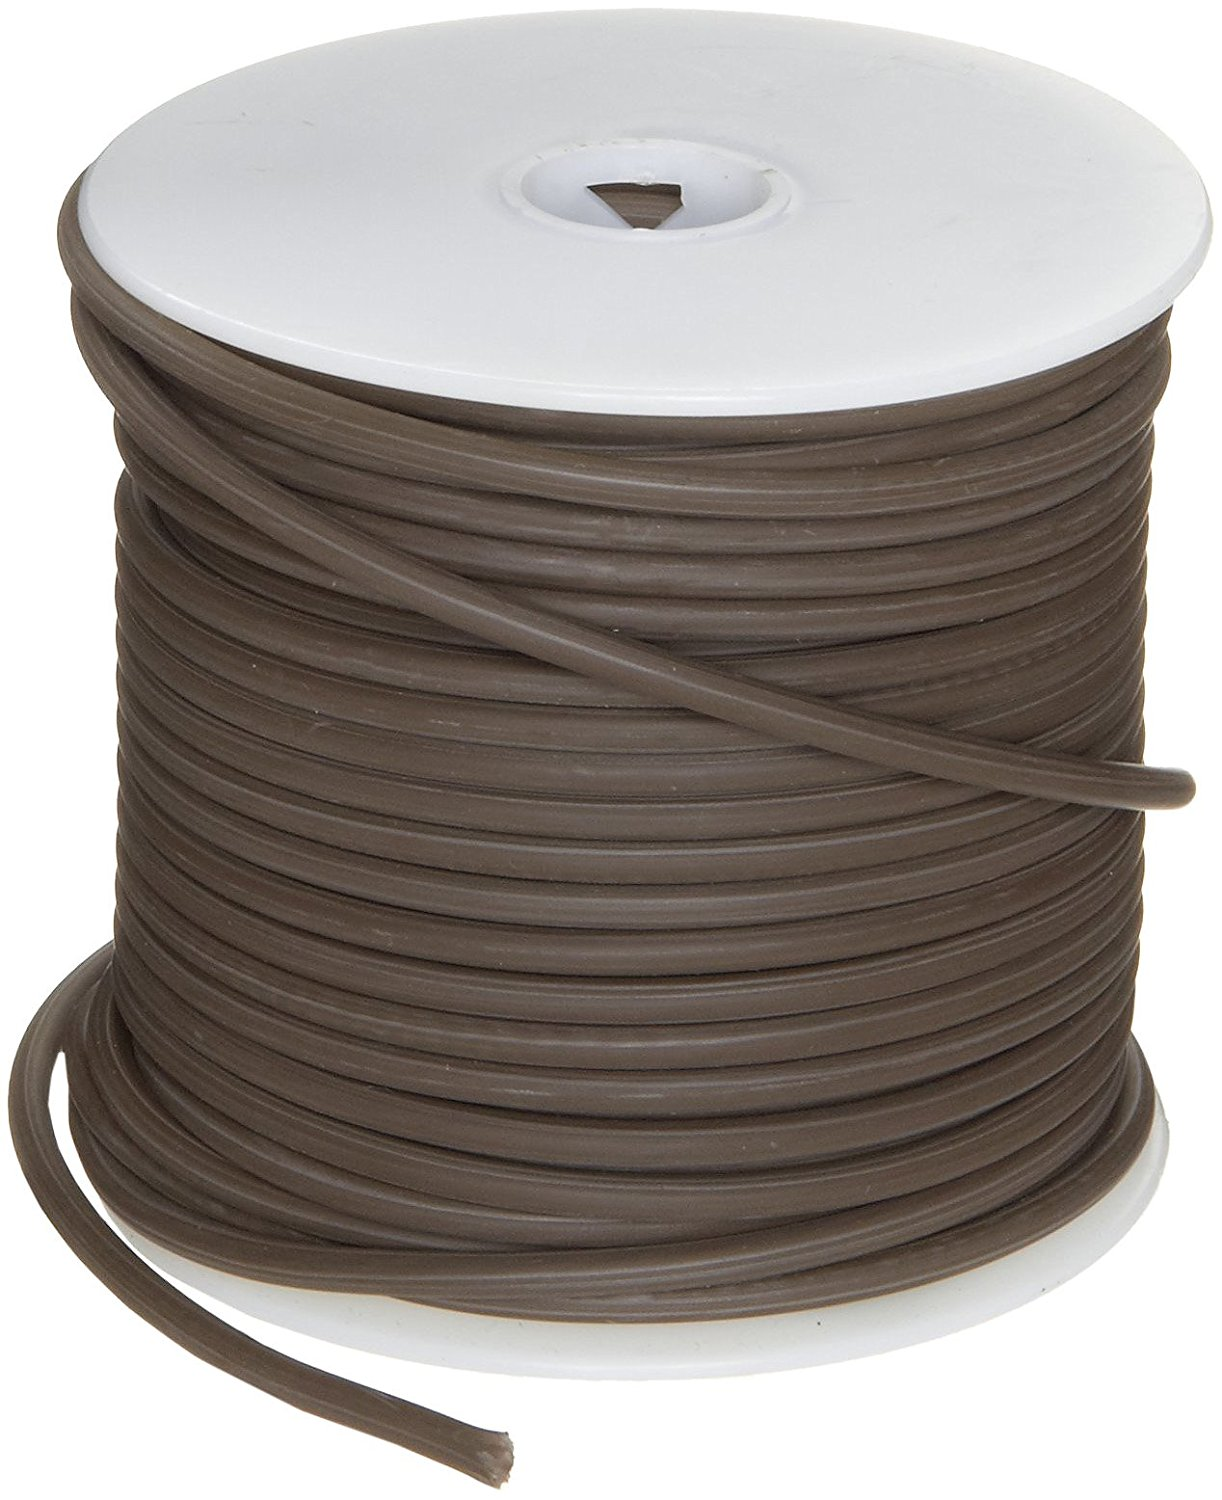 Gxl automotive copper wire brown 14 awg 00641 100 length gxl automotive copper wire brown 14 awg 00641 diameter 100 length pack of 1 keyboard keysfo Image collections